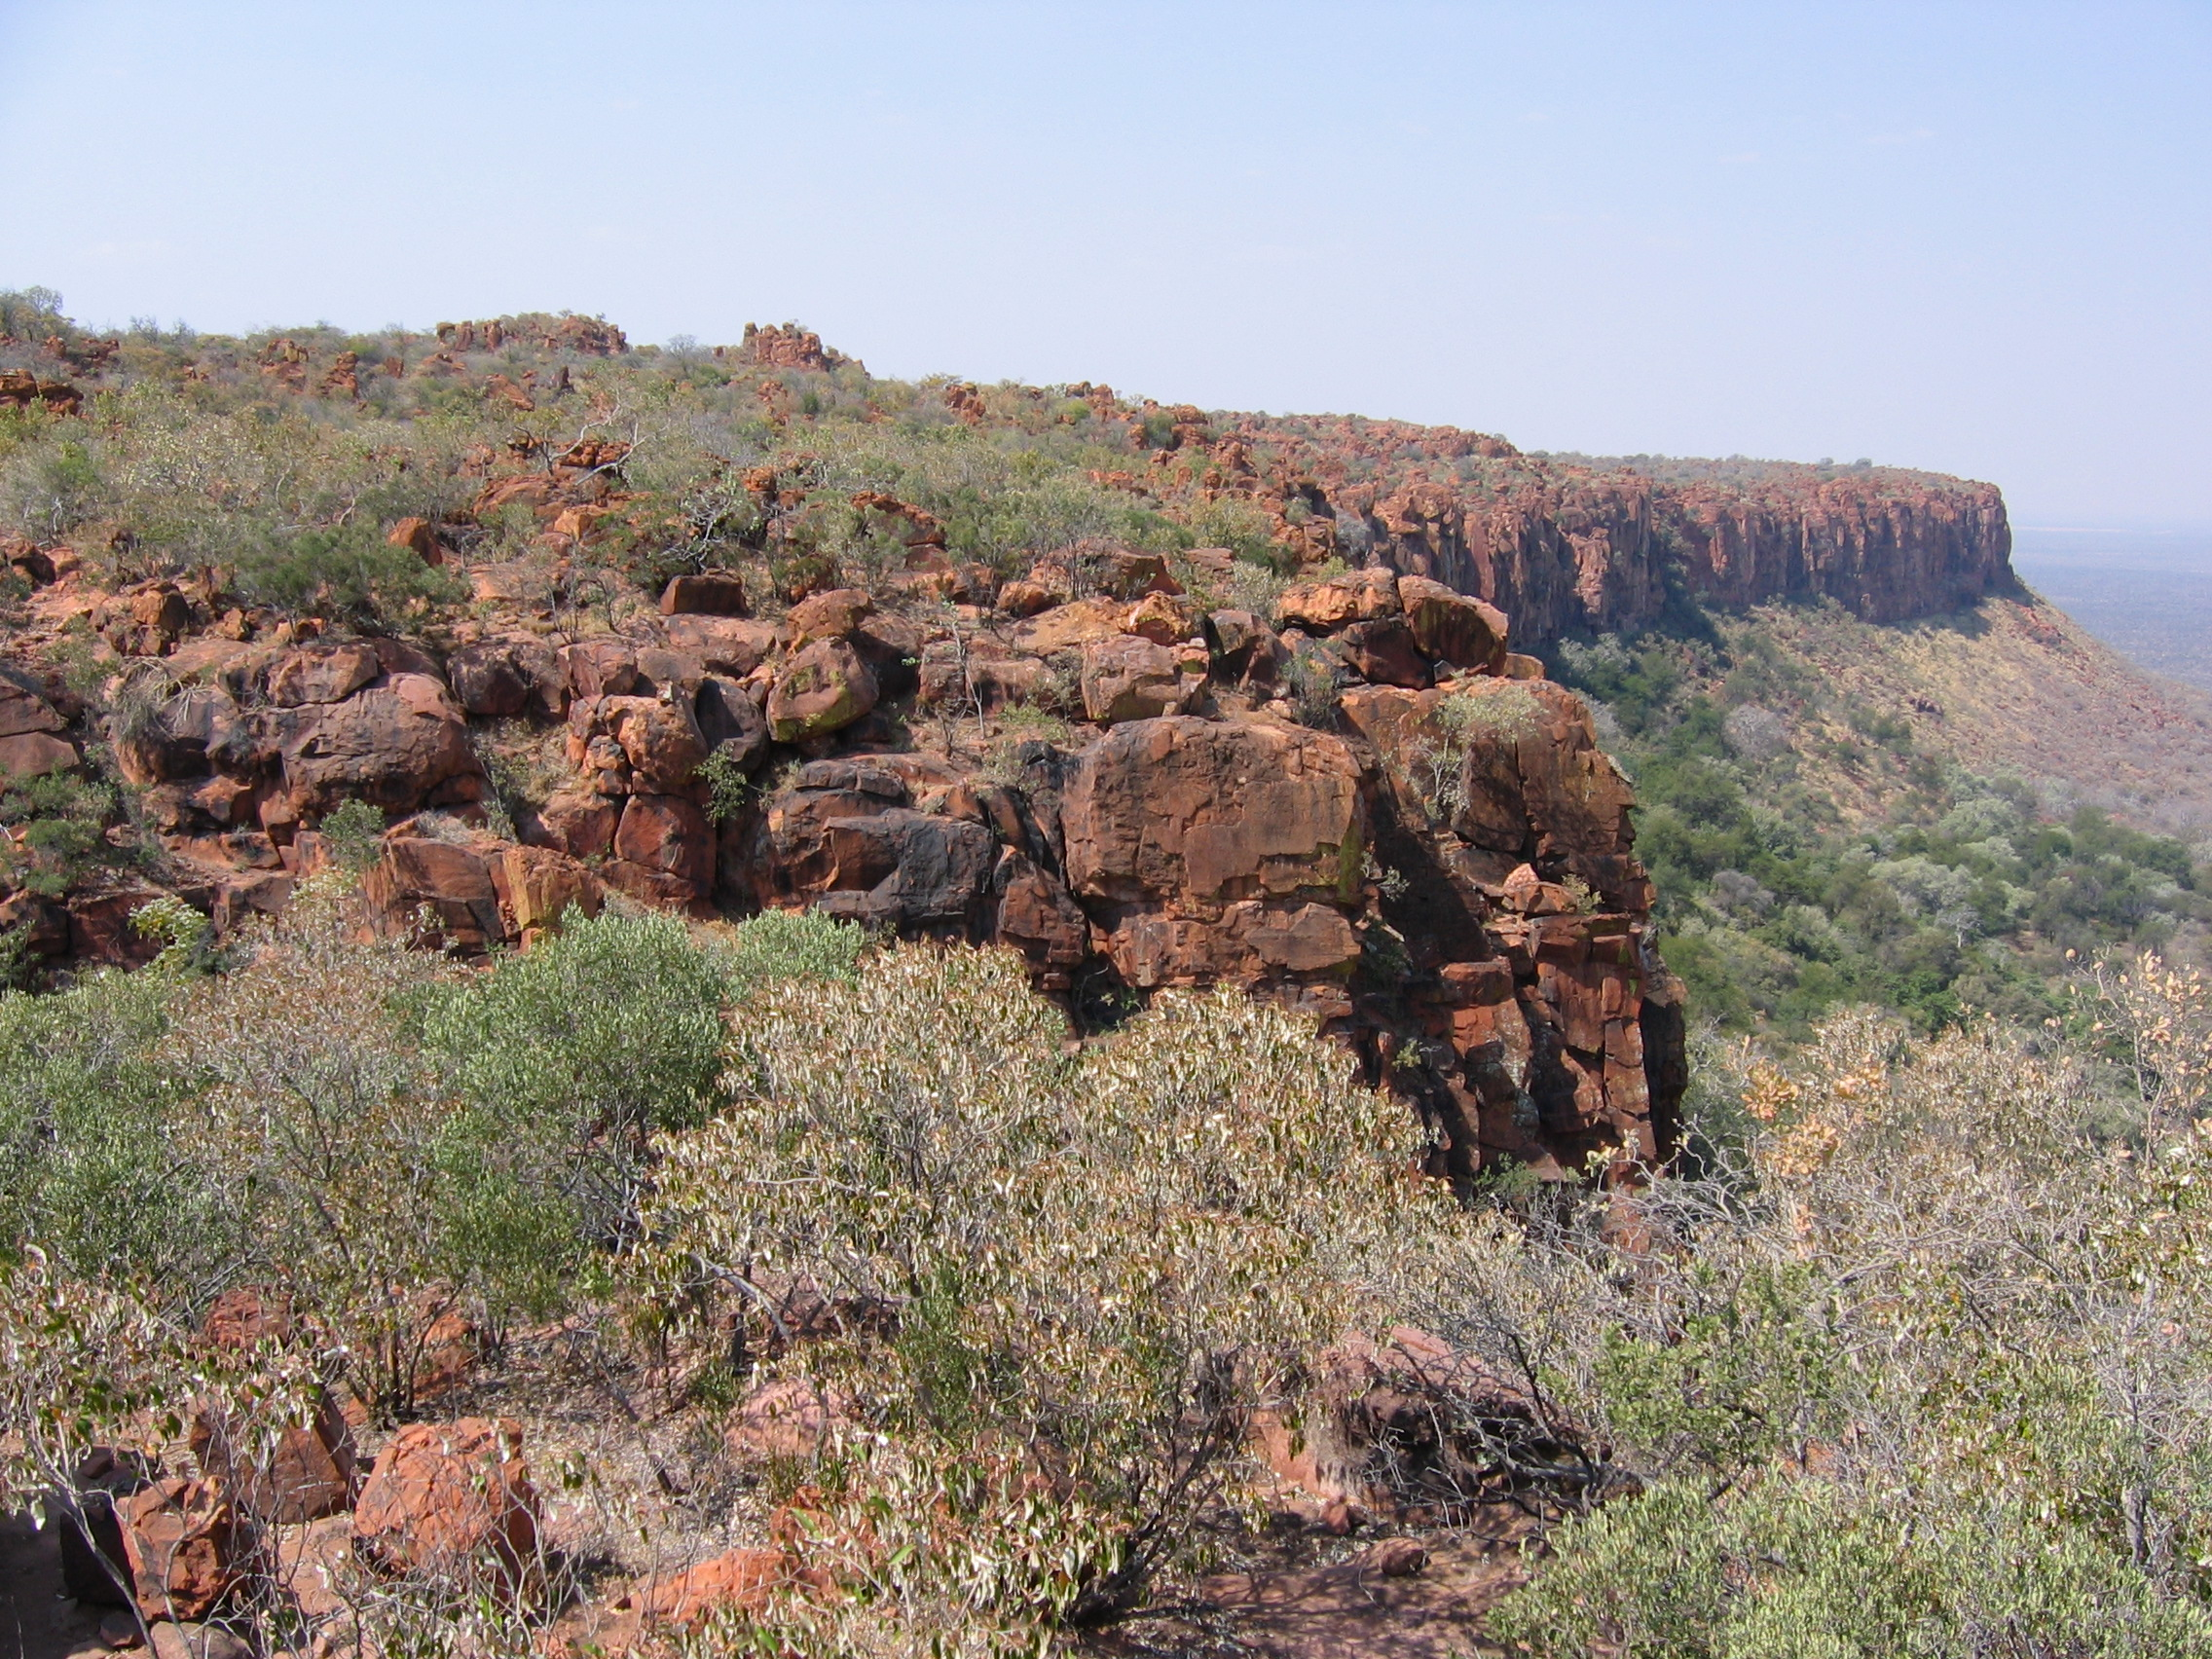 Rand des Waterberg-Plateaus